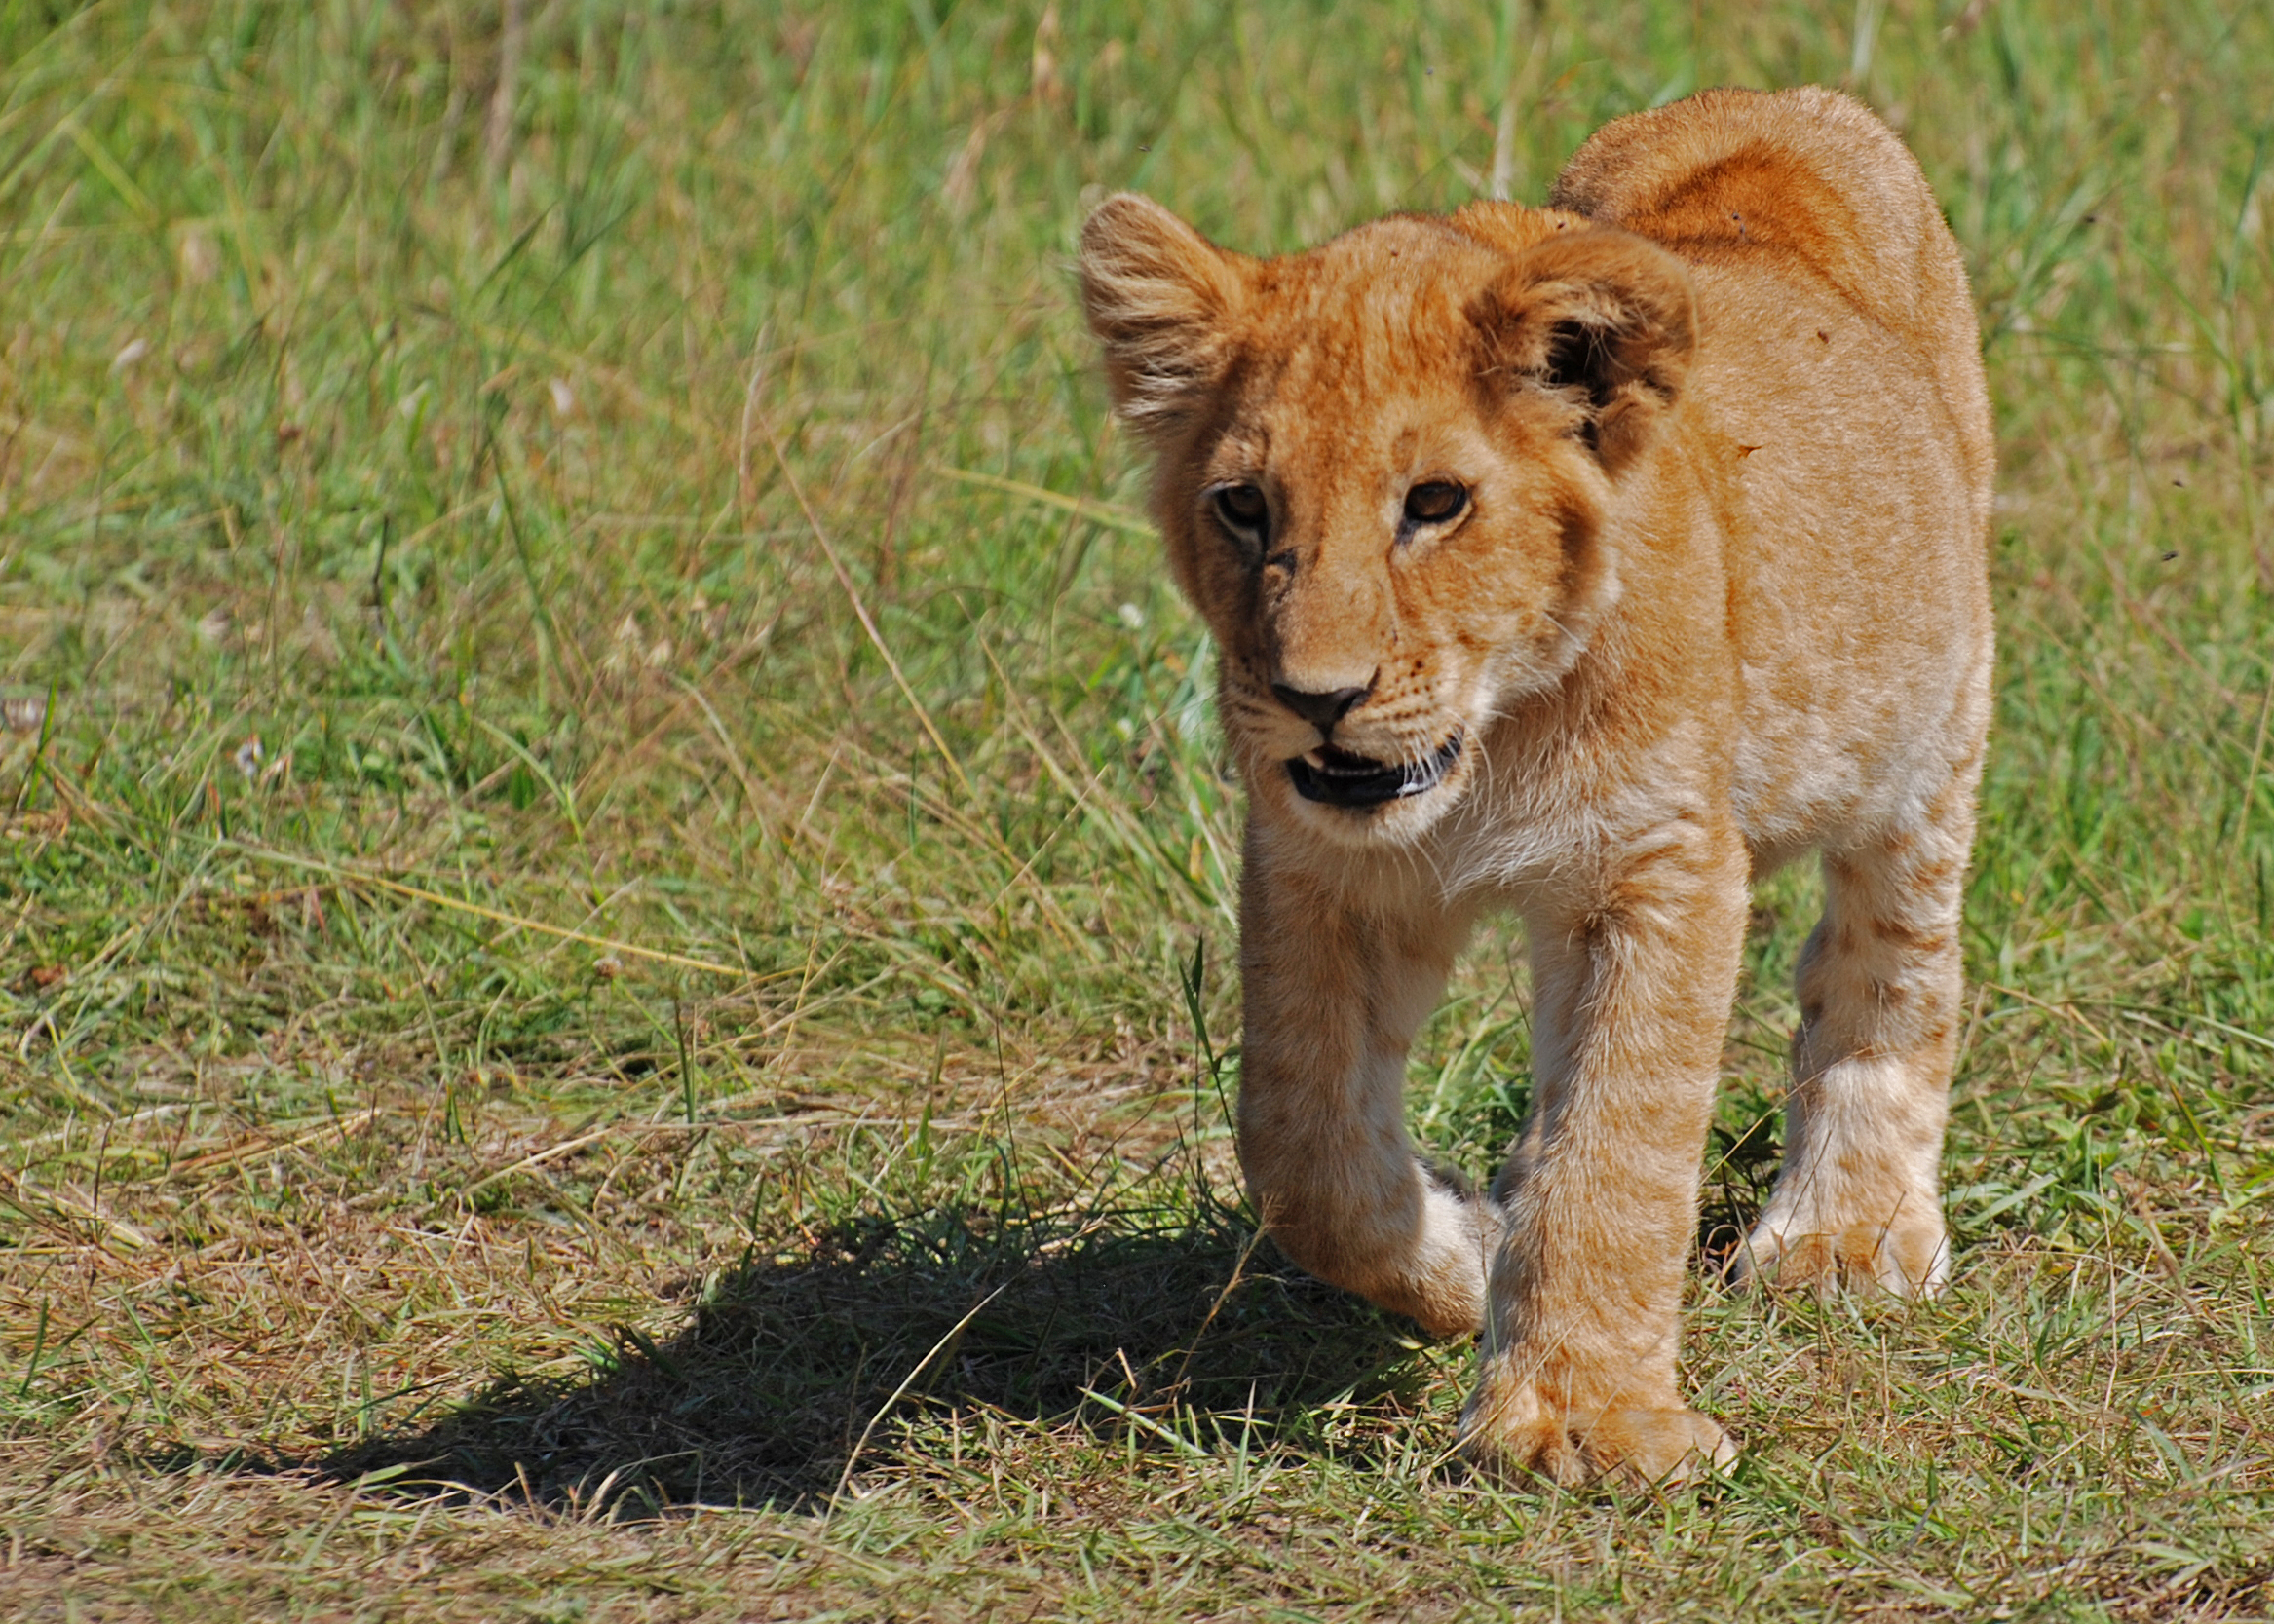 Lion cub. Photo: Paul Mannix, Science Box